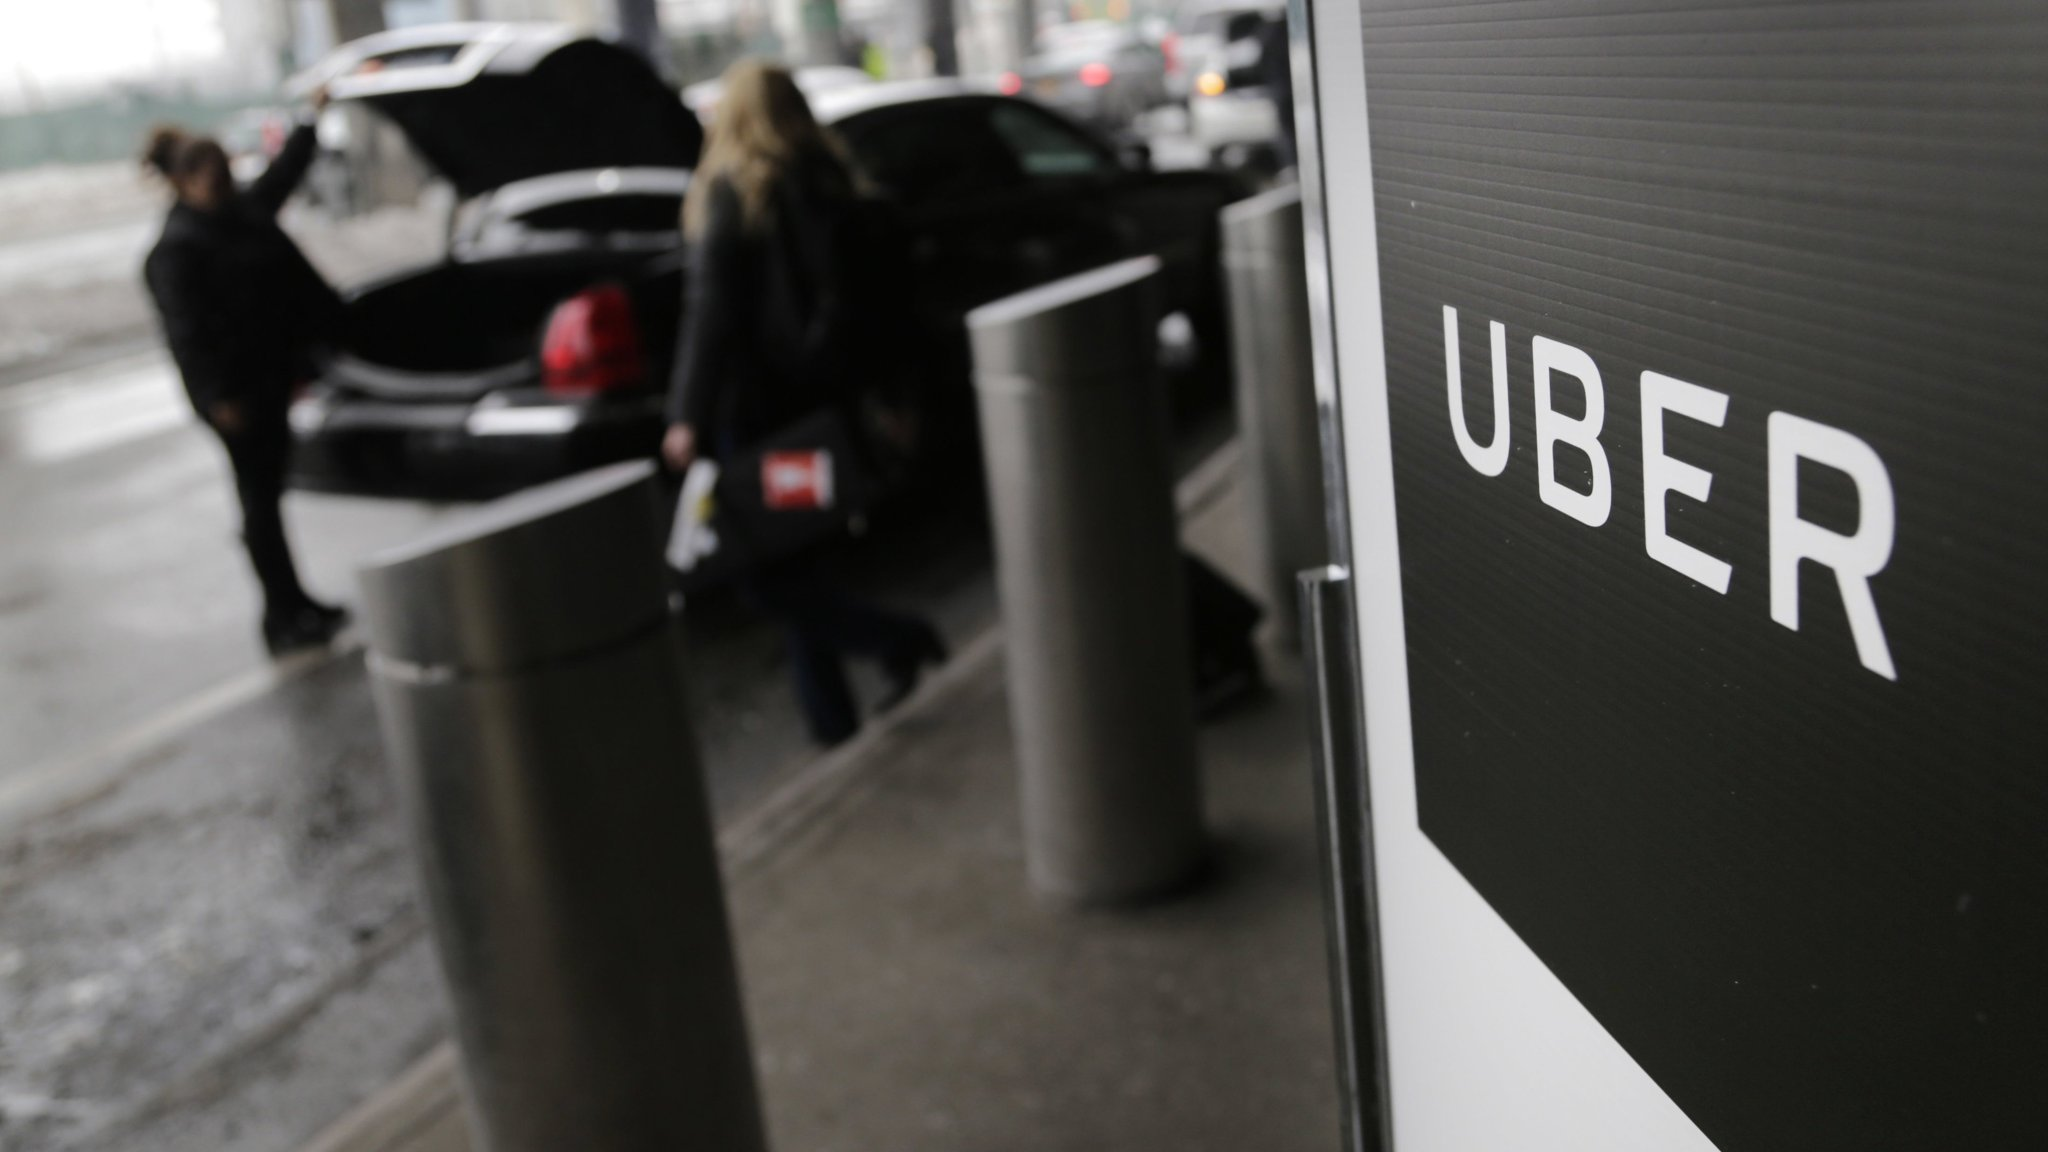 Uber faces investigations by regulators over massive data